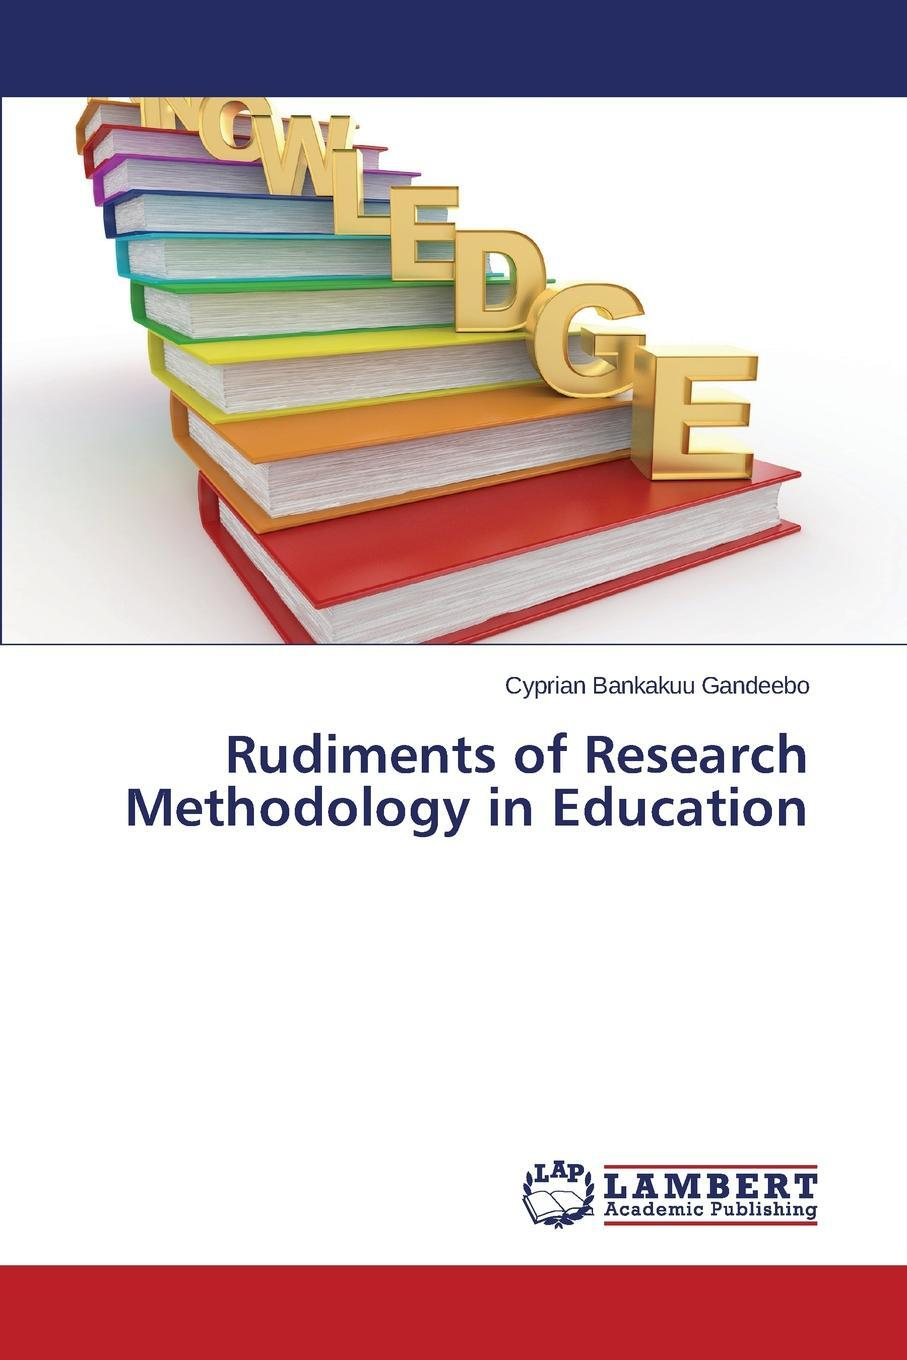 Rudiments of Research Methodology in Education